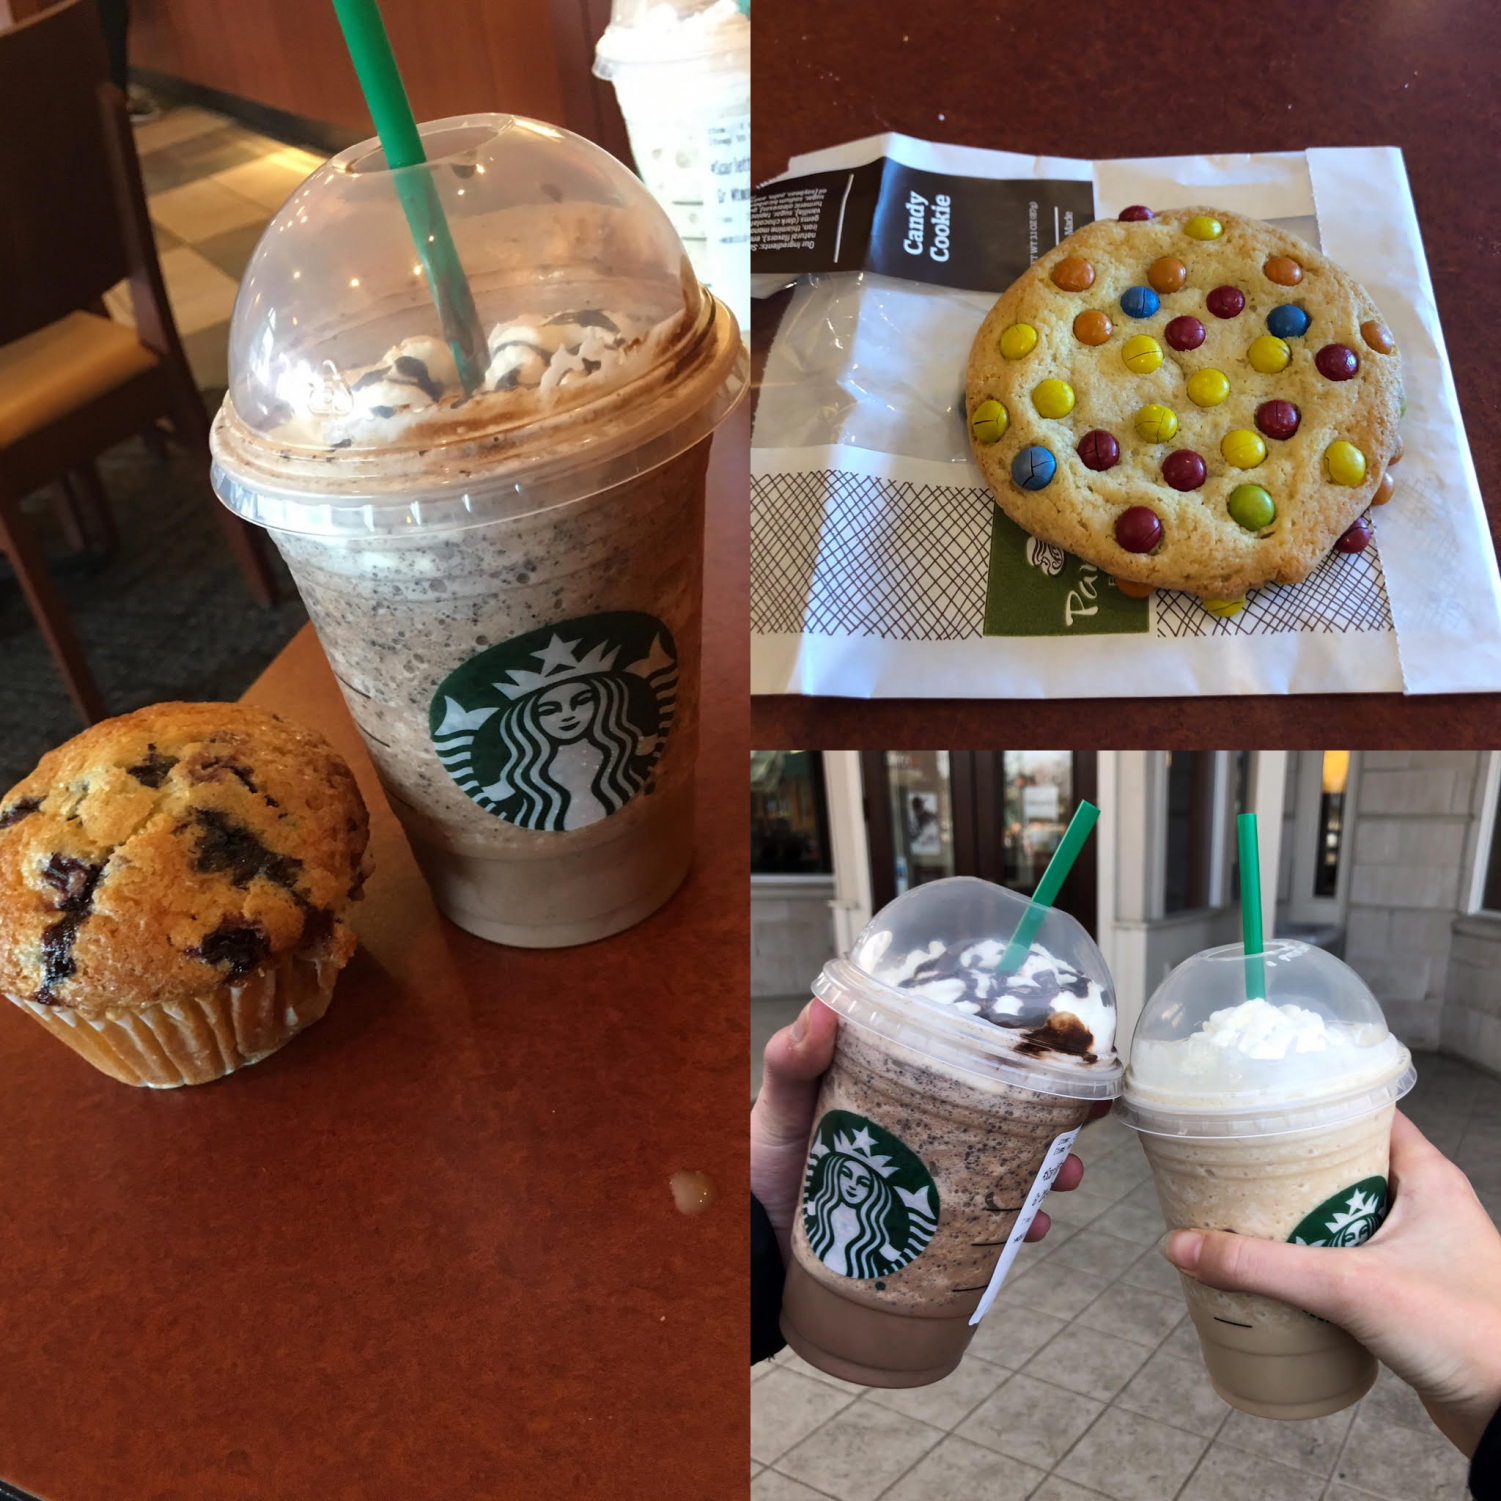 Starbucks and Panera baked goods.